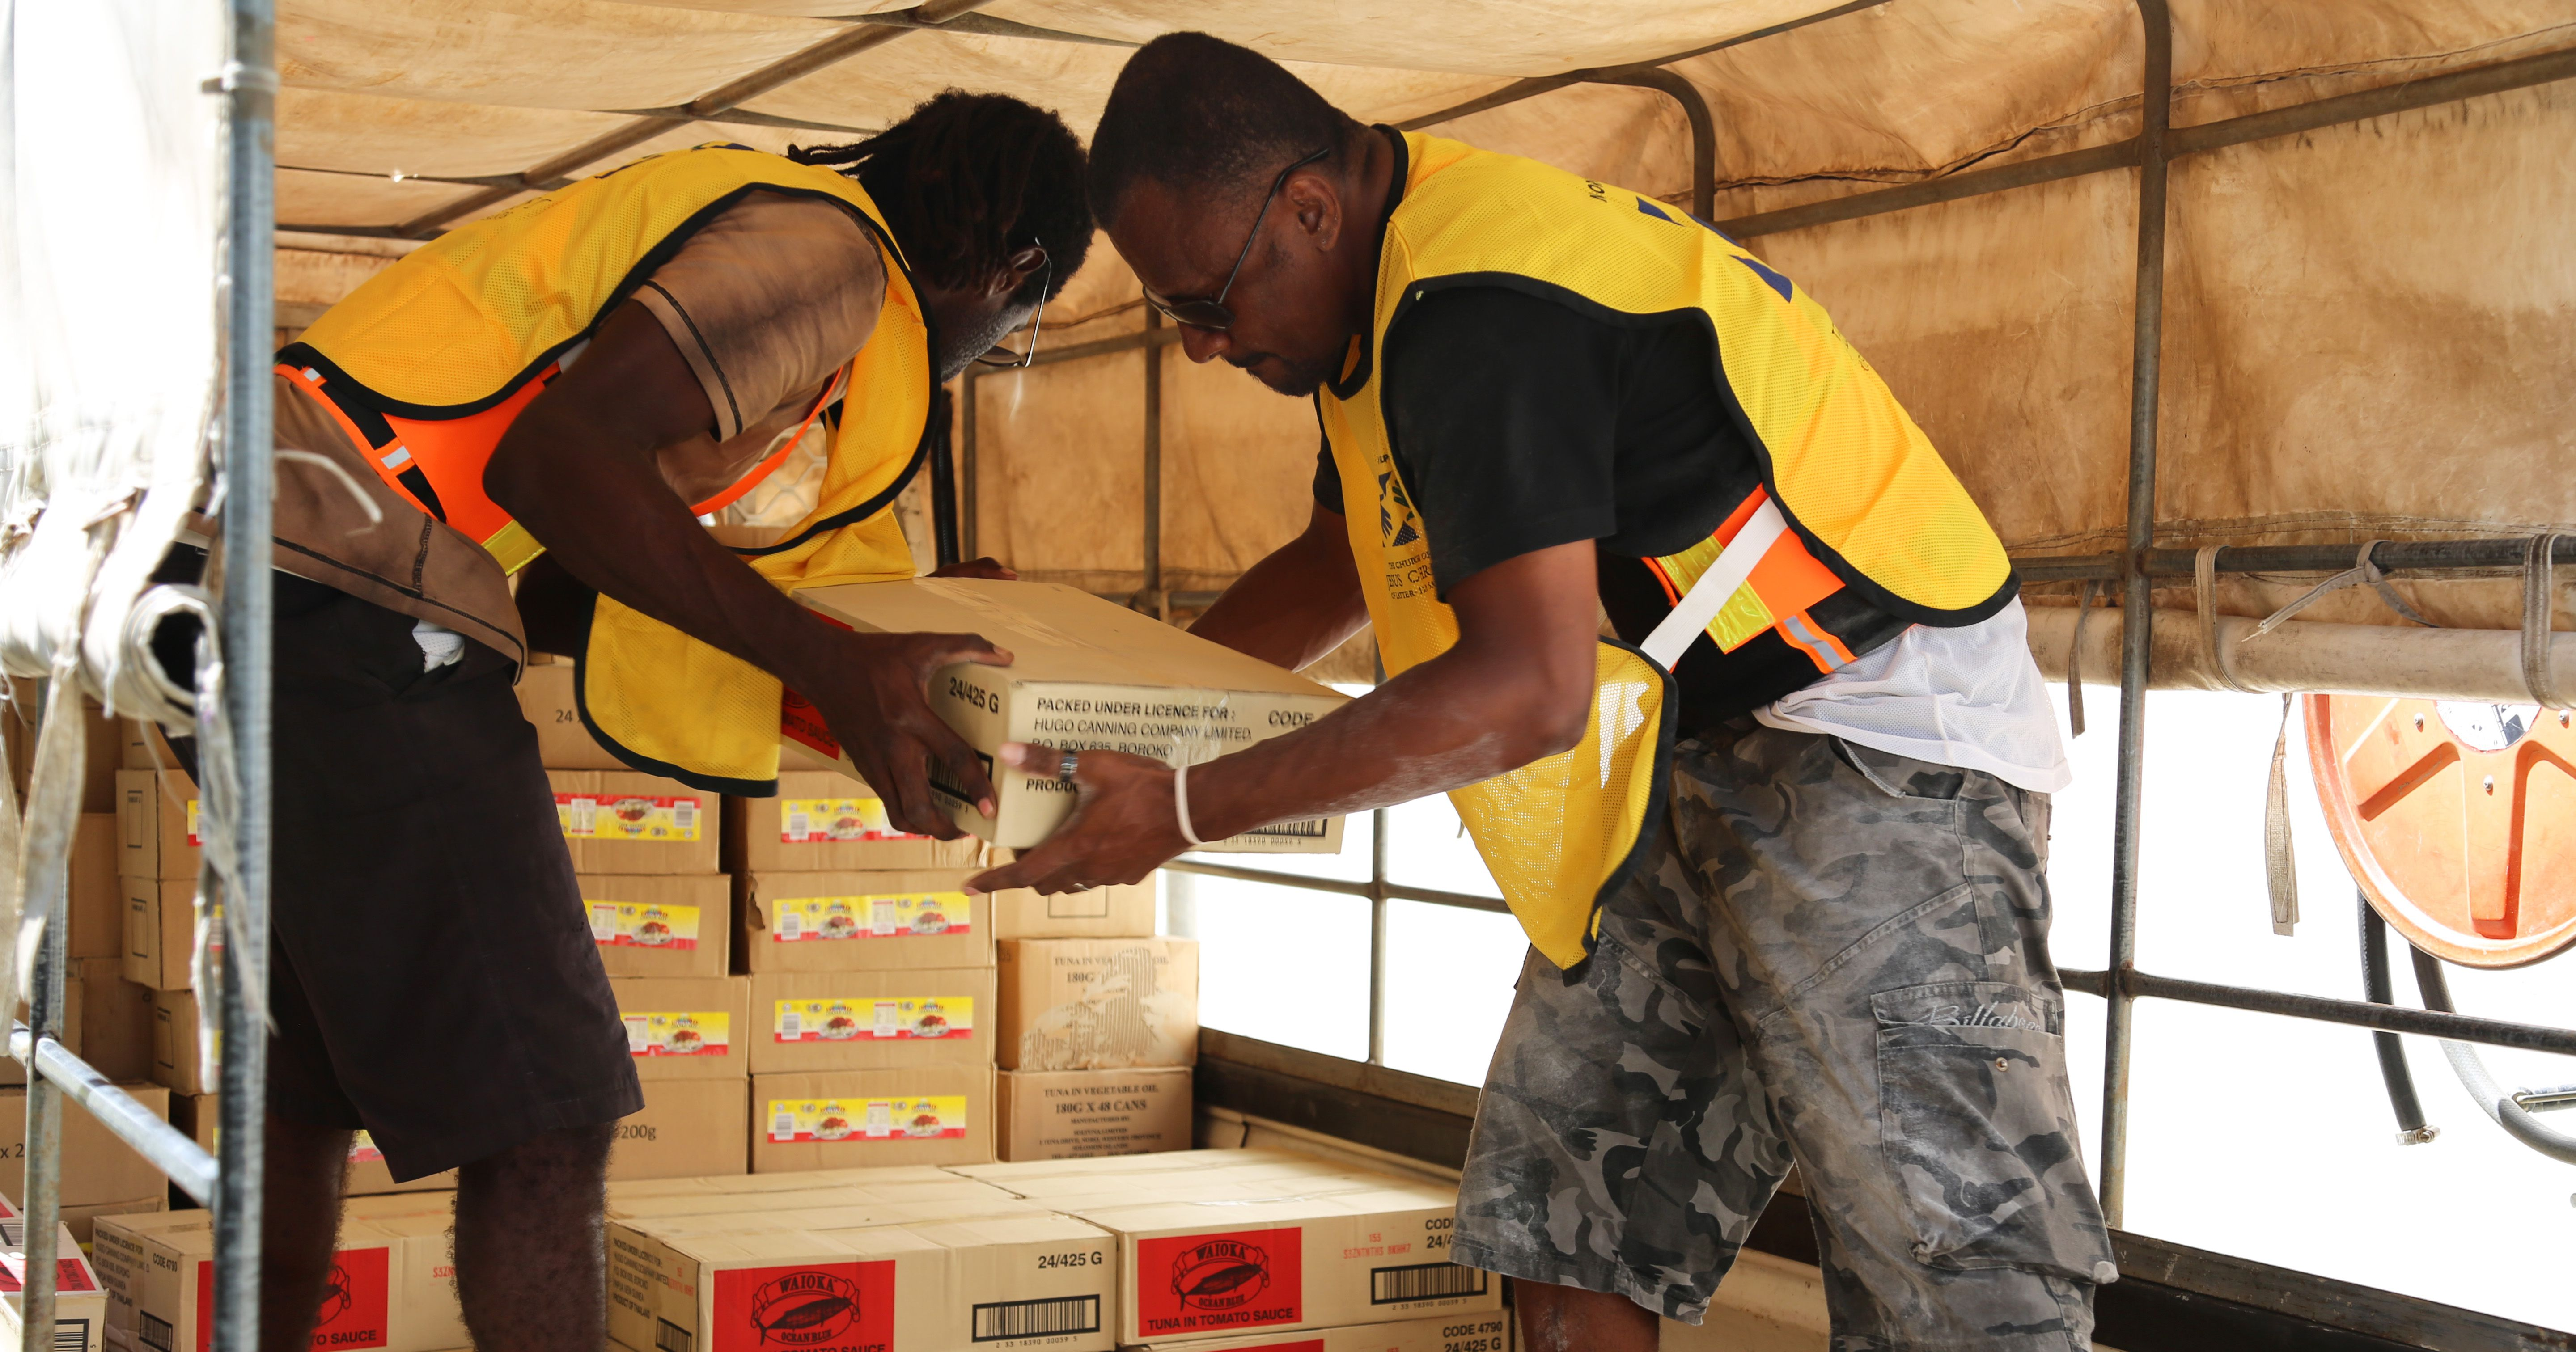 Two men assisting with disaster relief